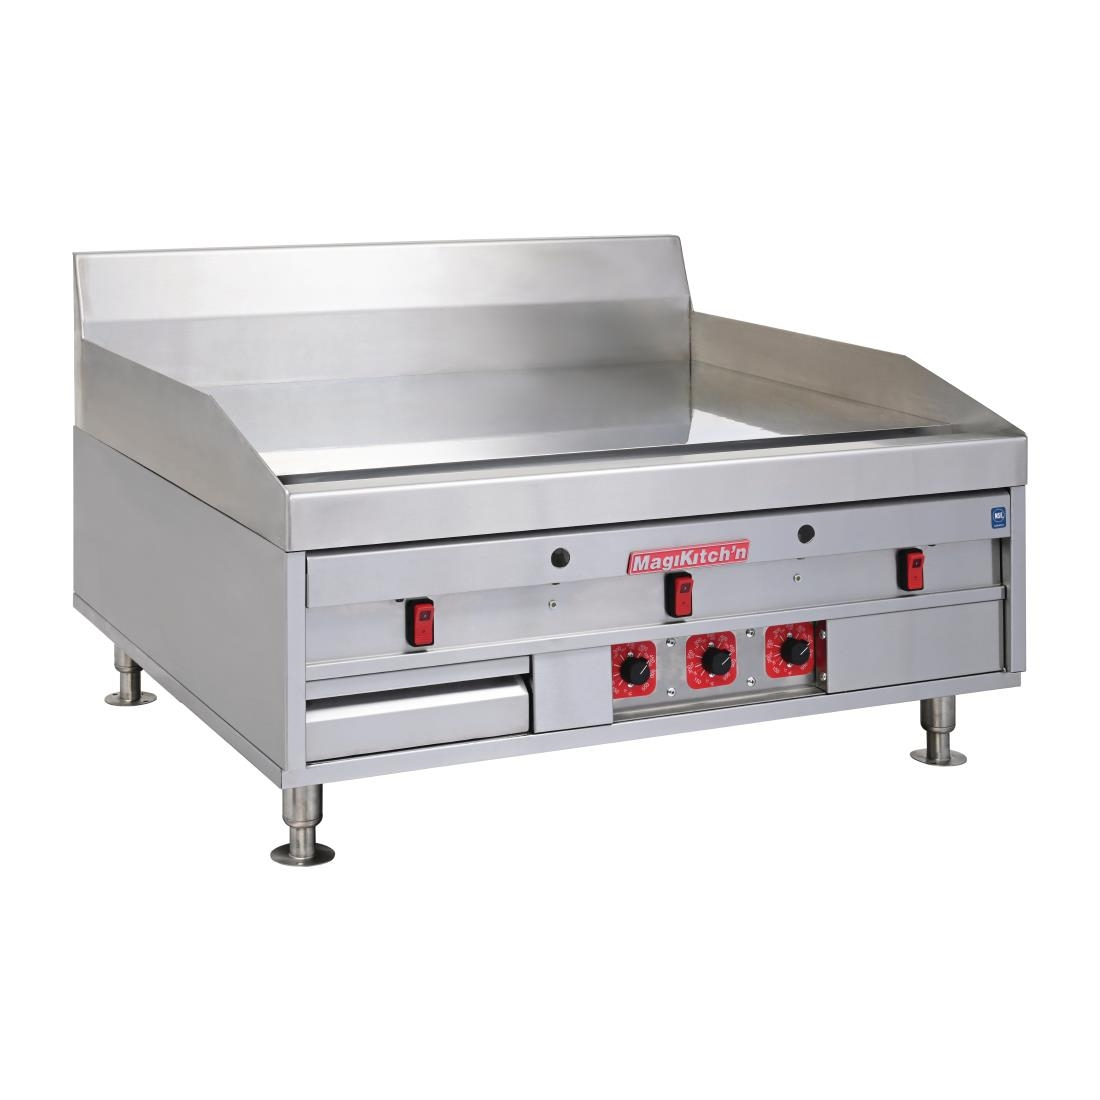 Image of MagiKitchn Heavy Duty Chrome Griddle MKE36